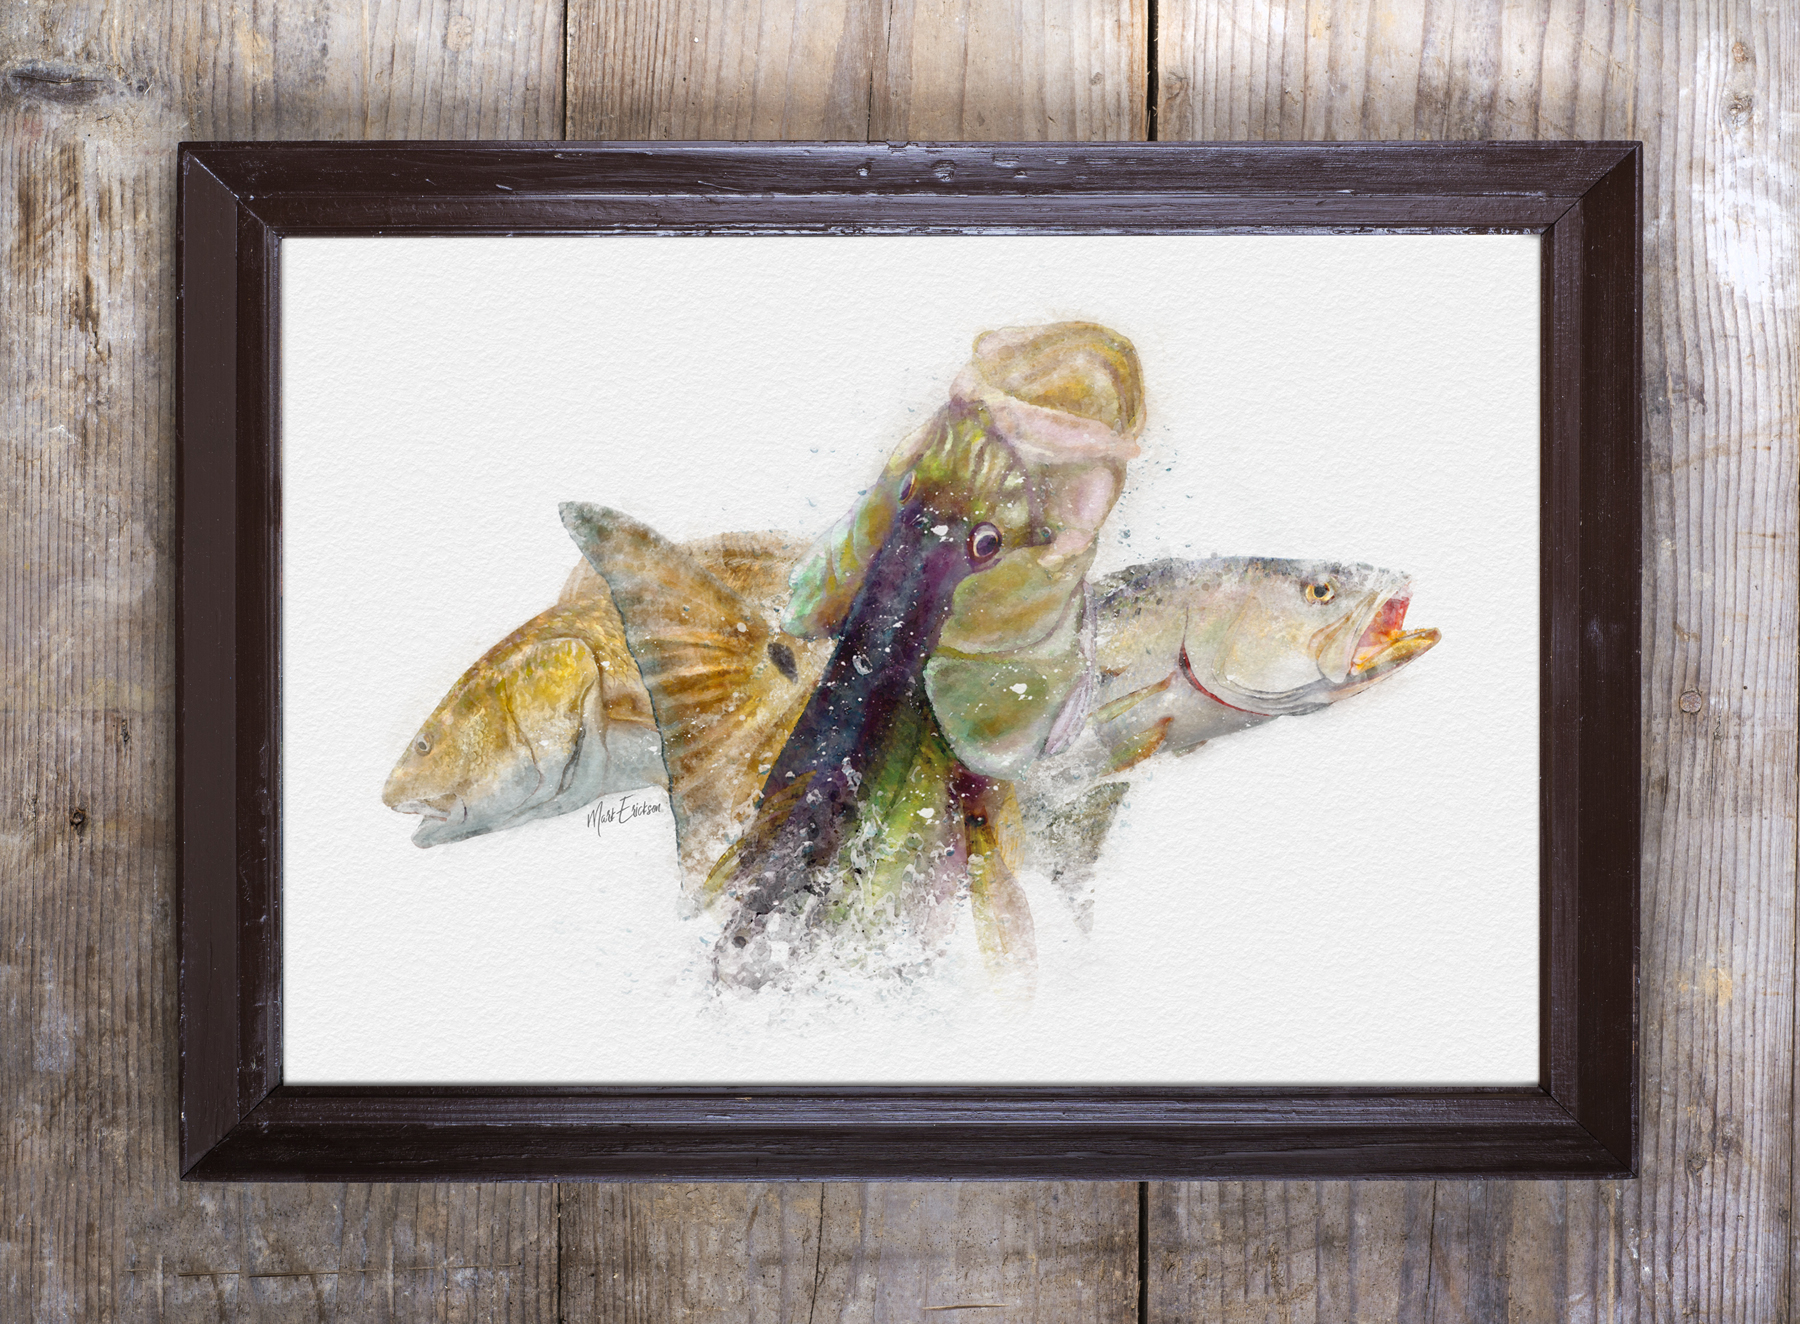 Inshore slam Florida framed art of redfish, snook and trout